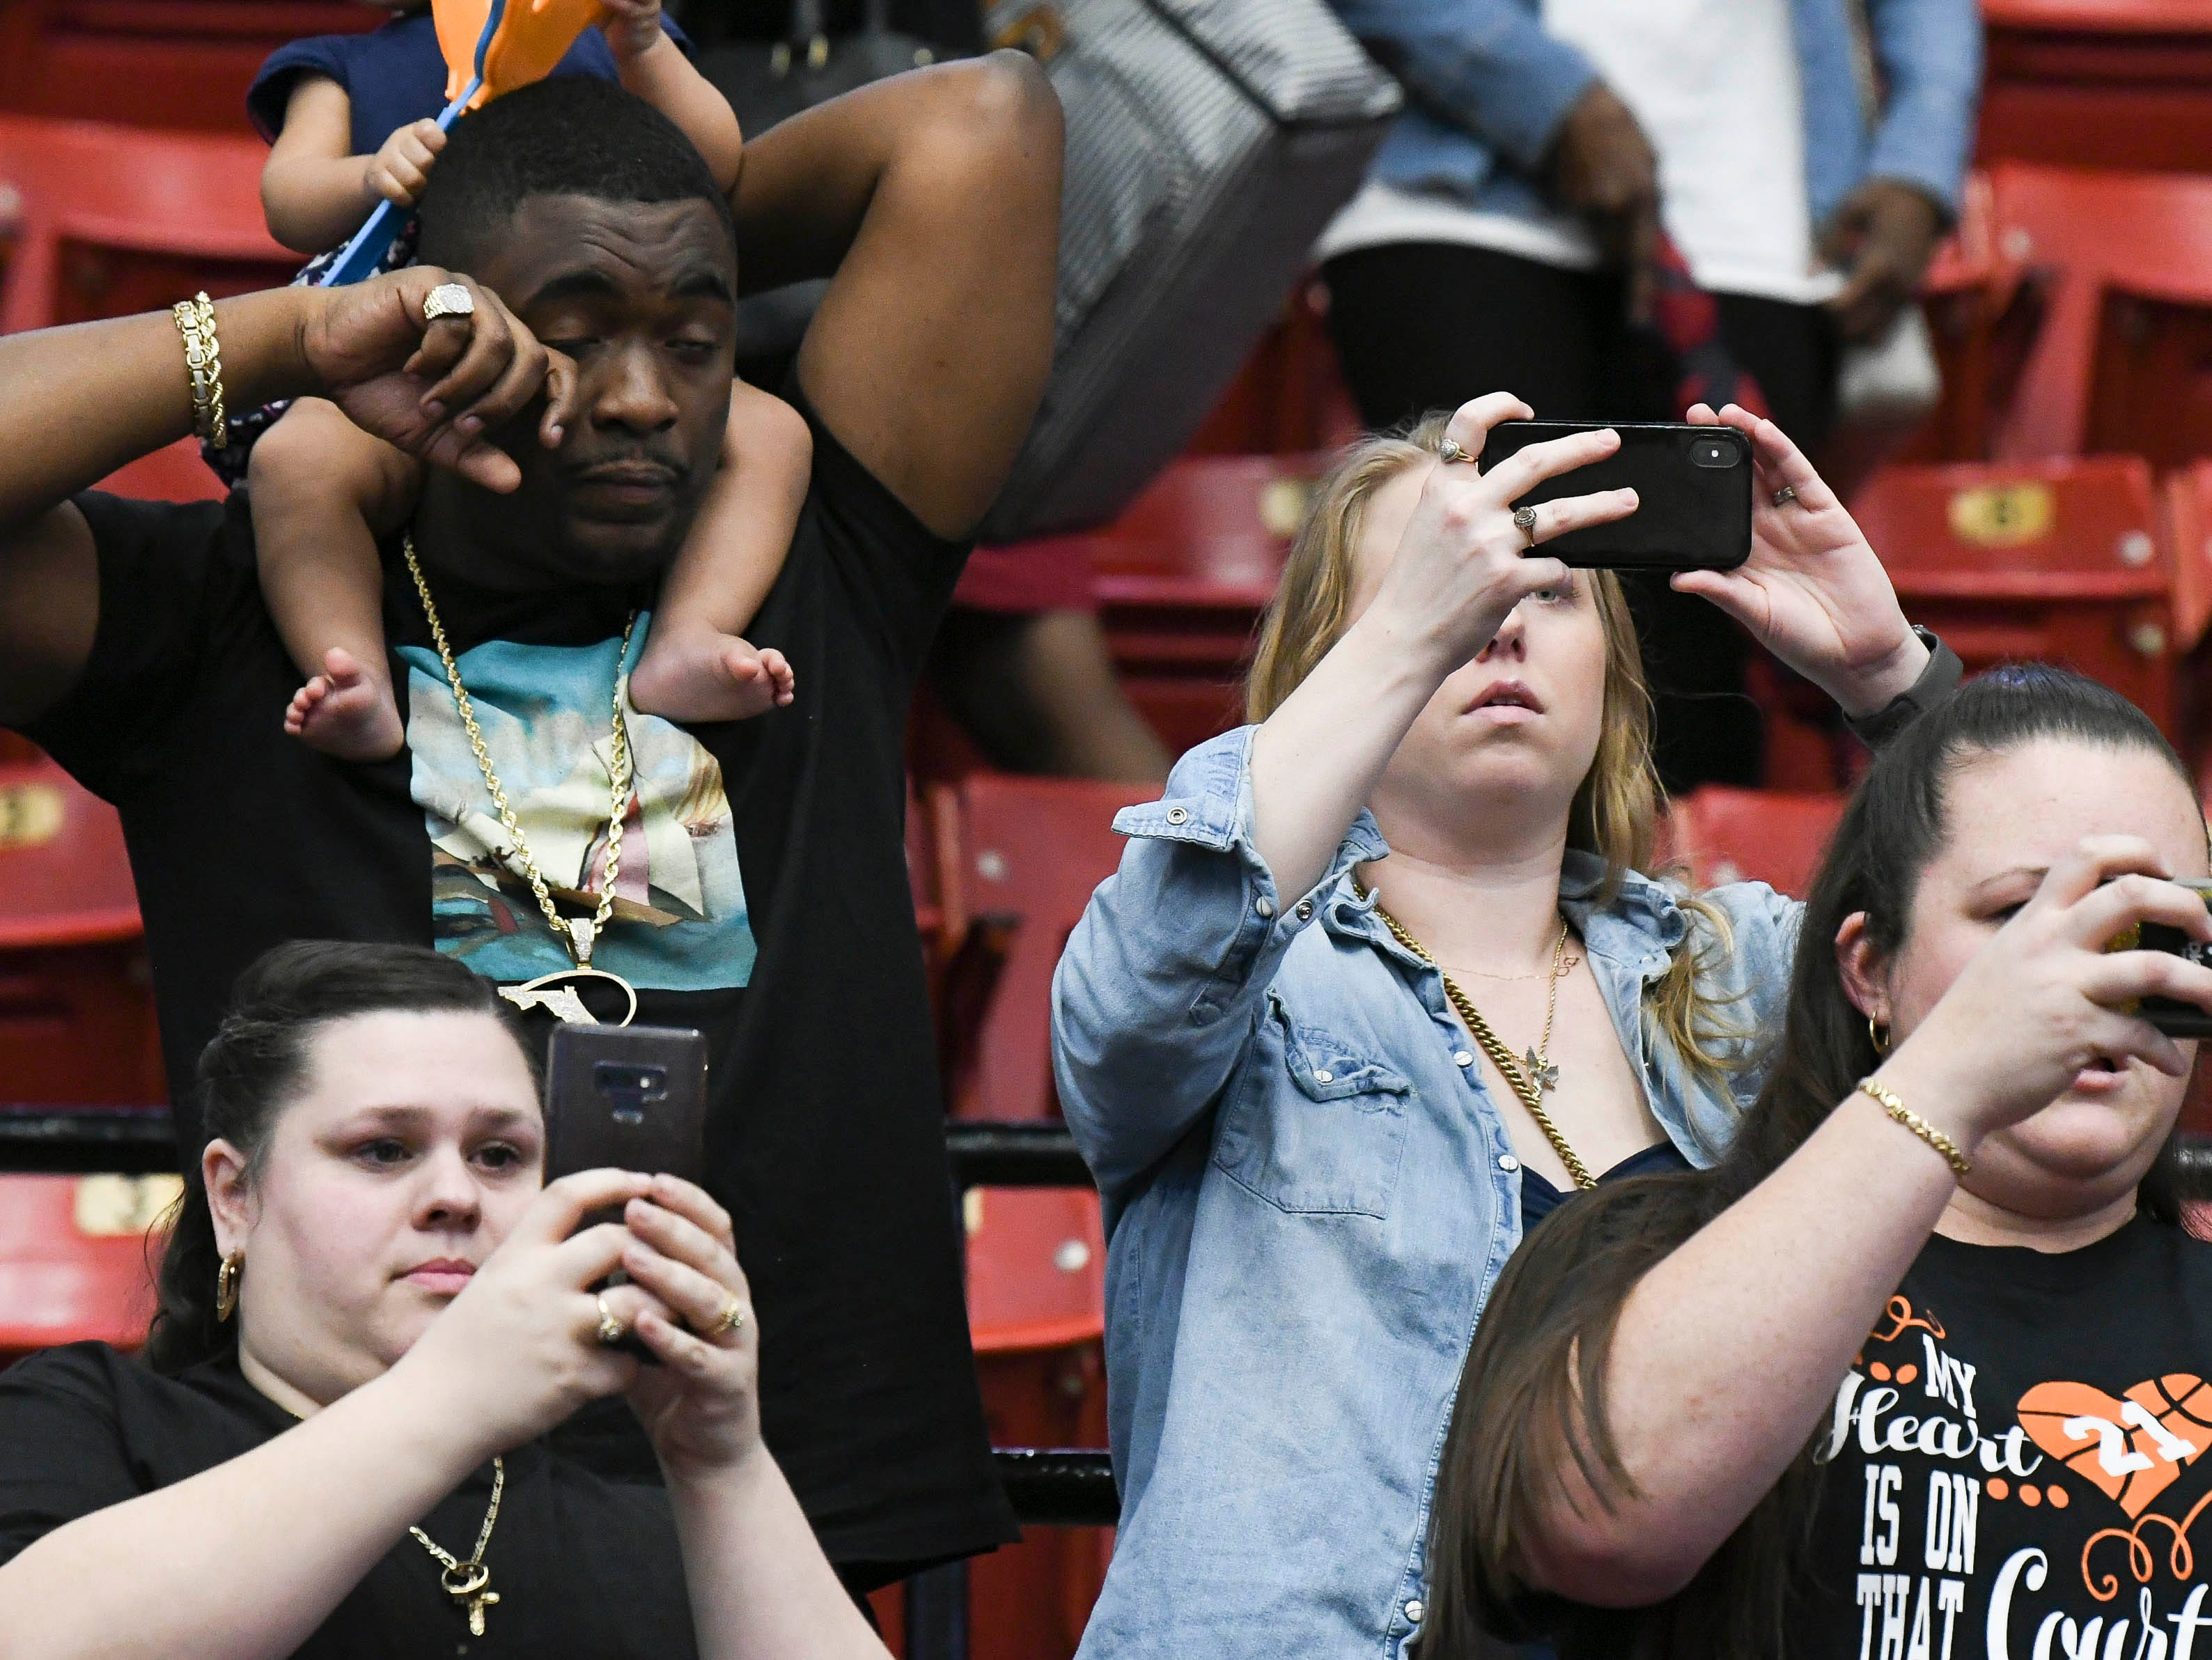 Florida Prep fans cheer for the Lady Falcons and take photos during Tuesday's Class 2A state championship game.